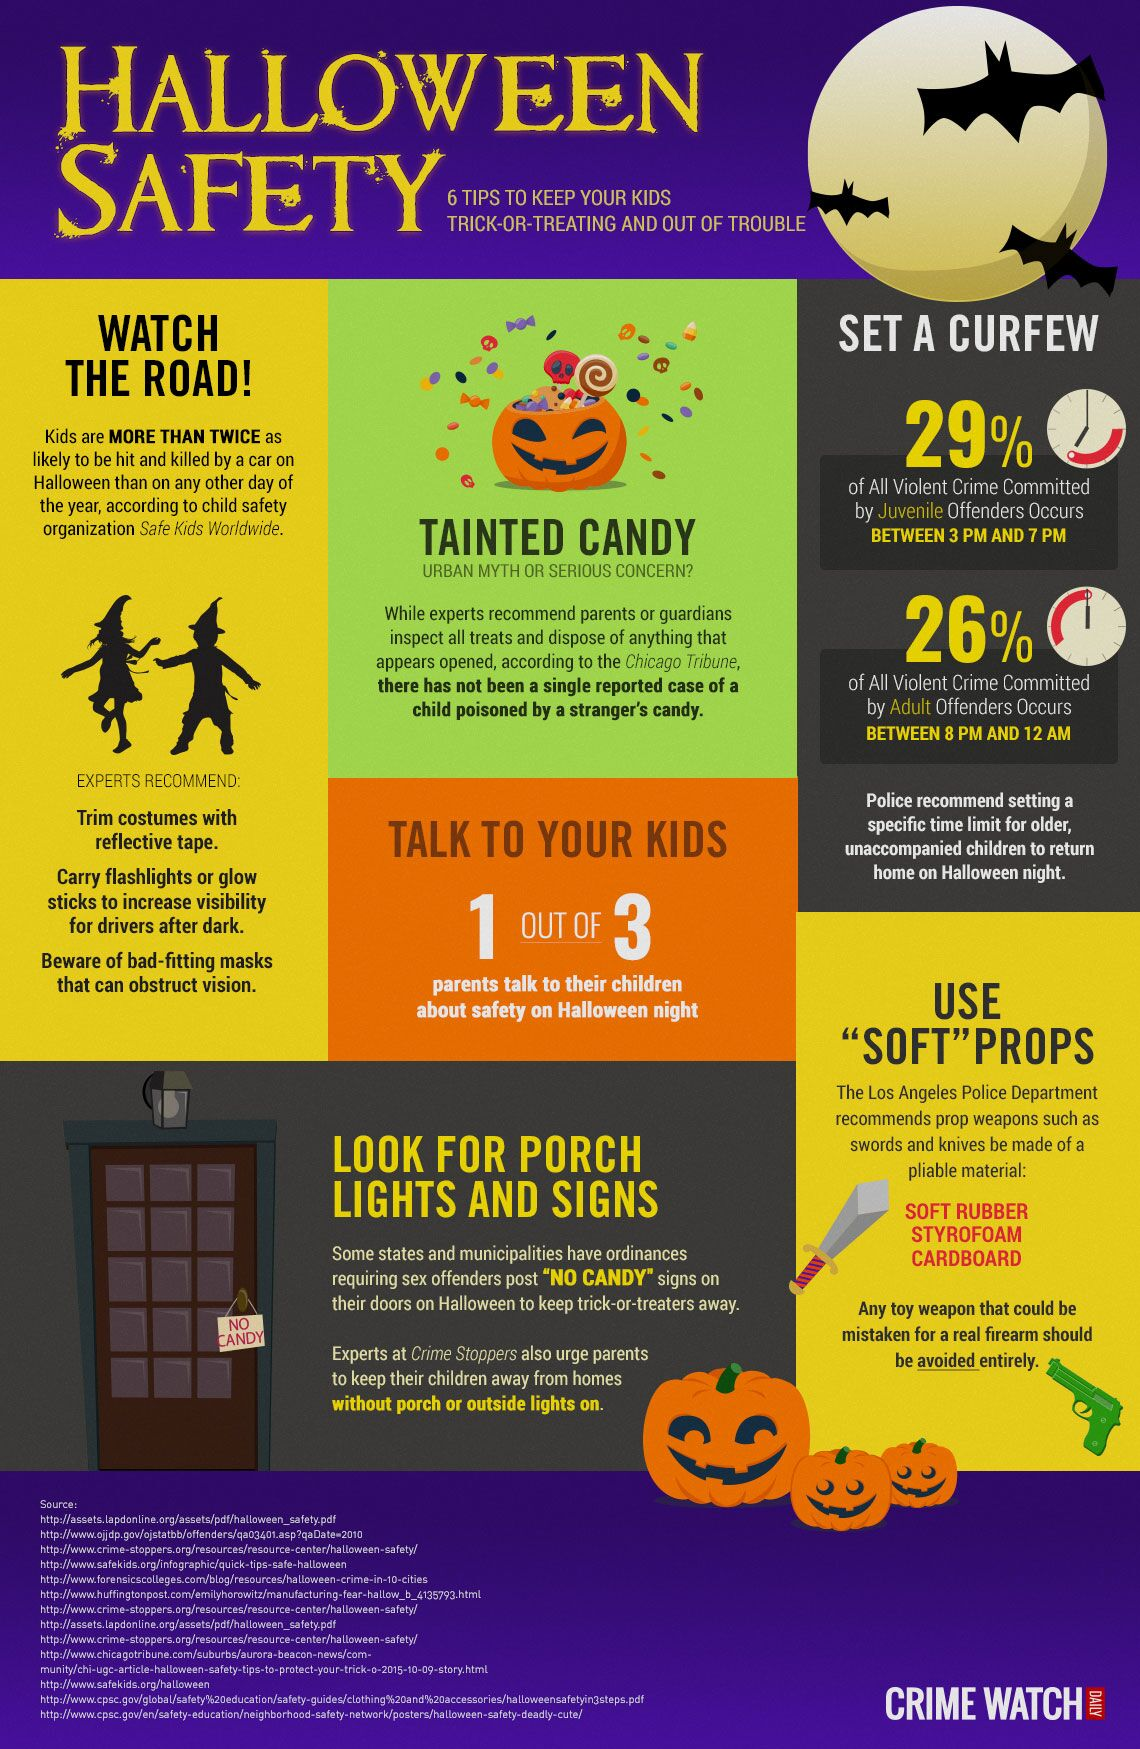 Halloween Safety Trick Or Treating Safety Tips